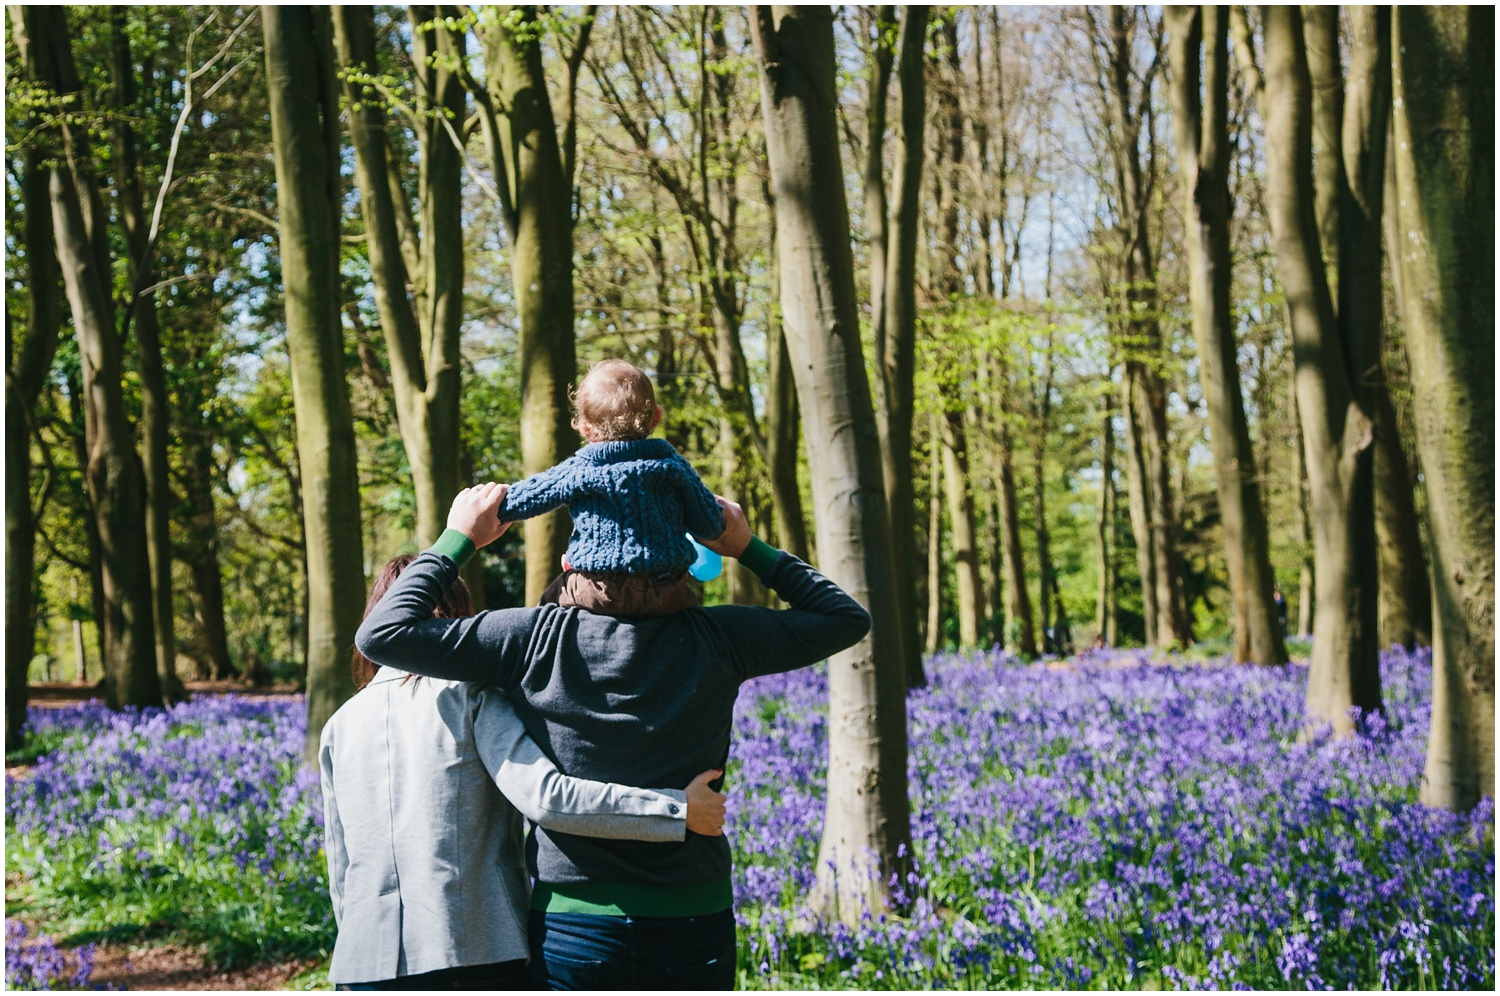 Catherine-Photography-Portraits-Family-Bluebells_0012-(1).jpg